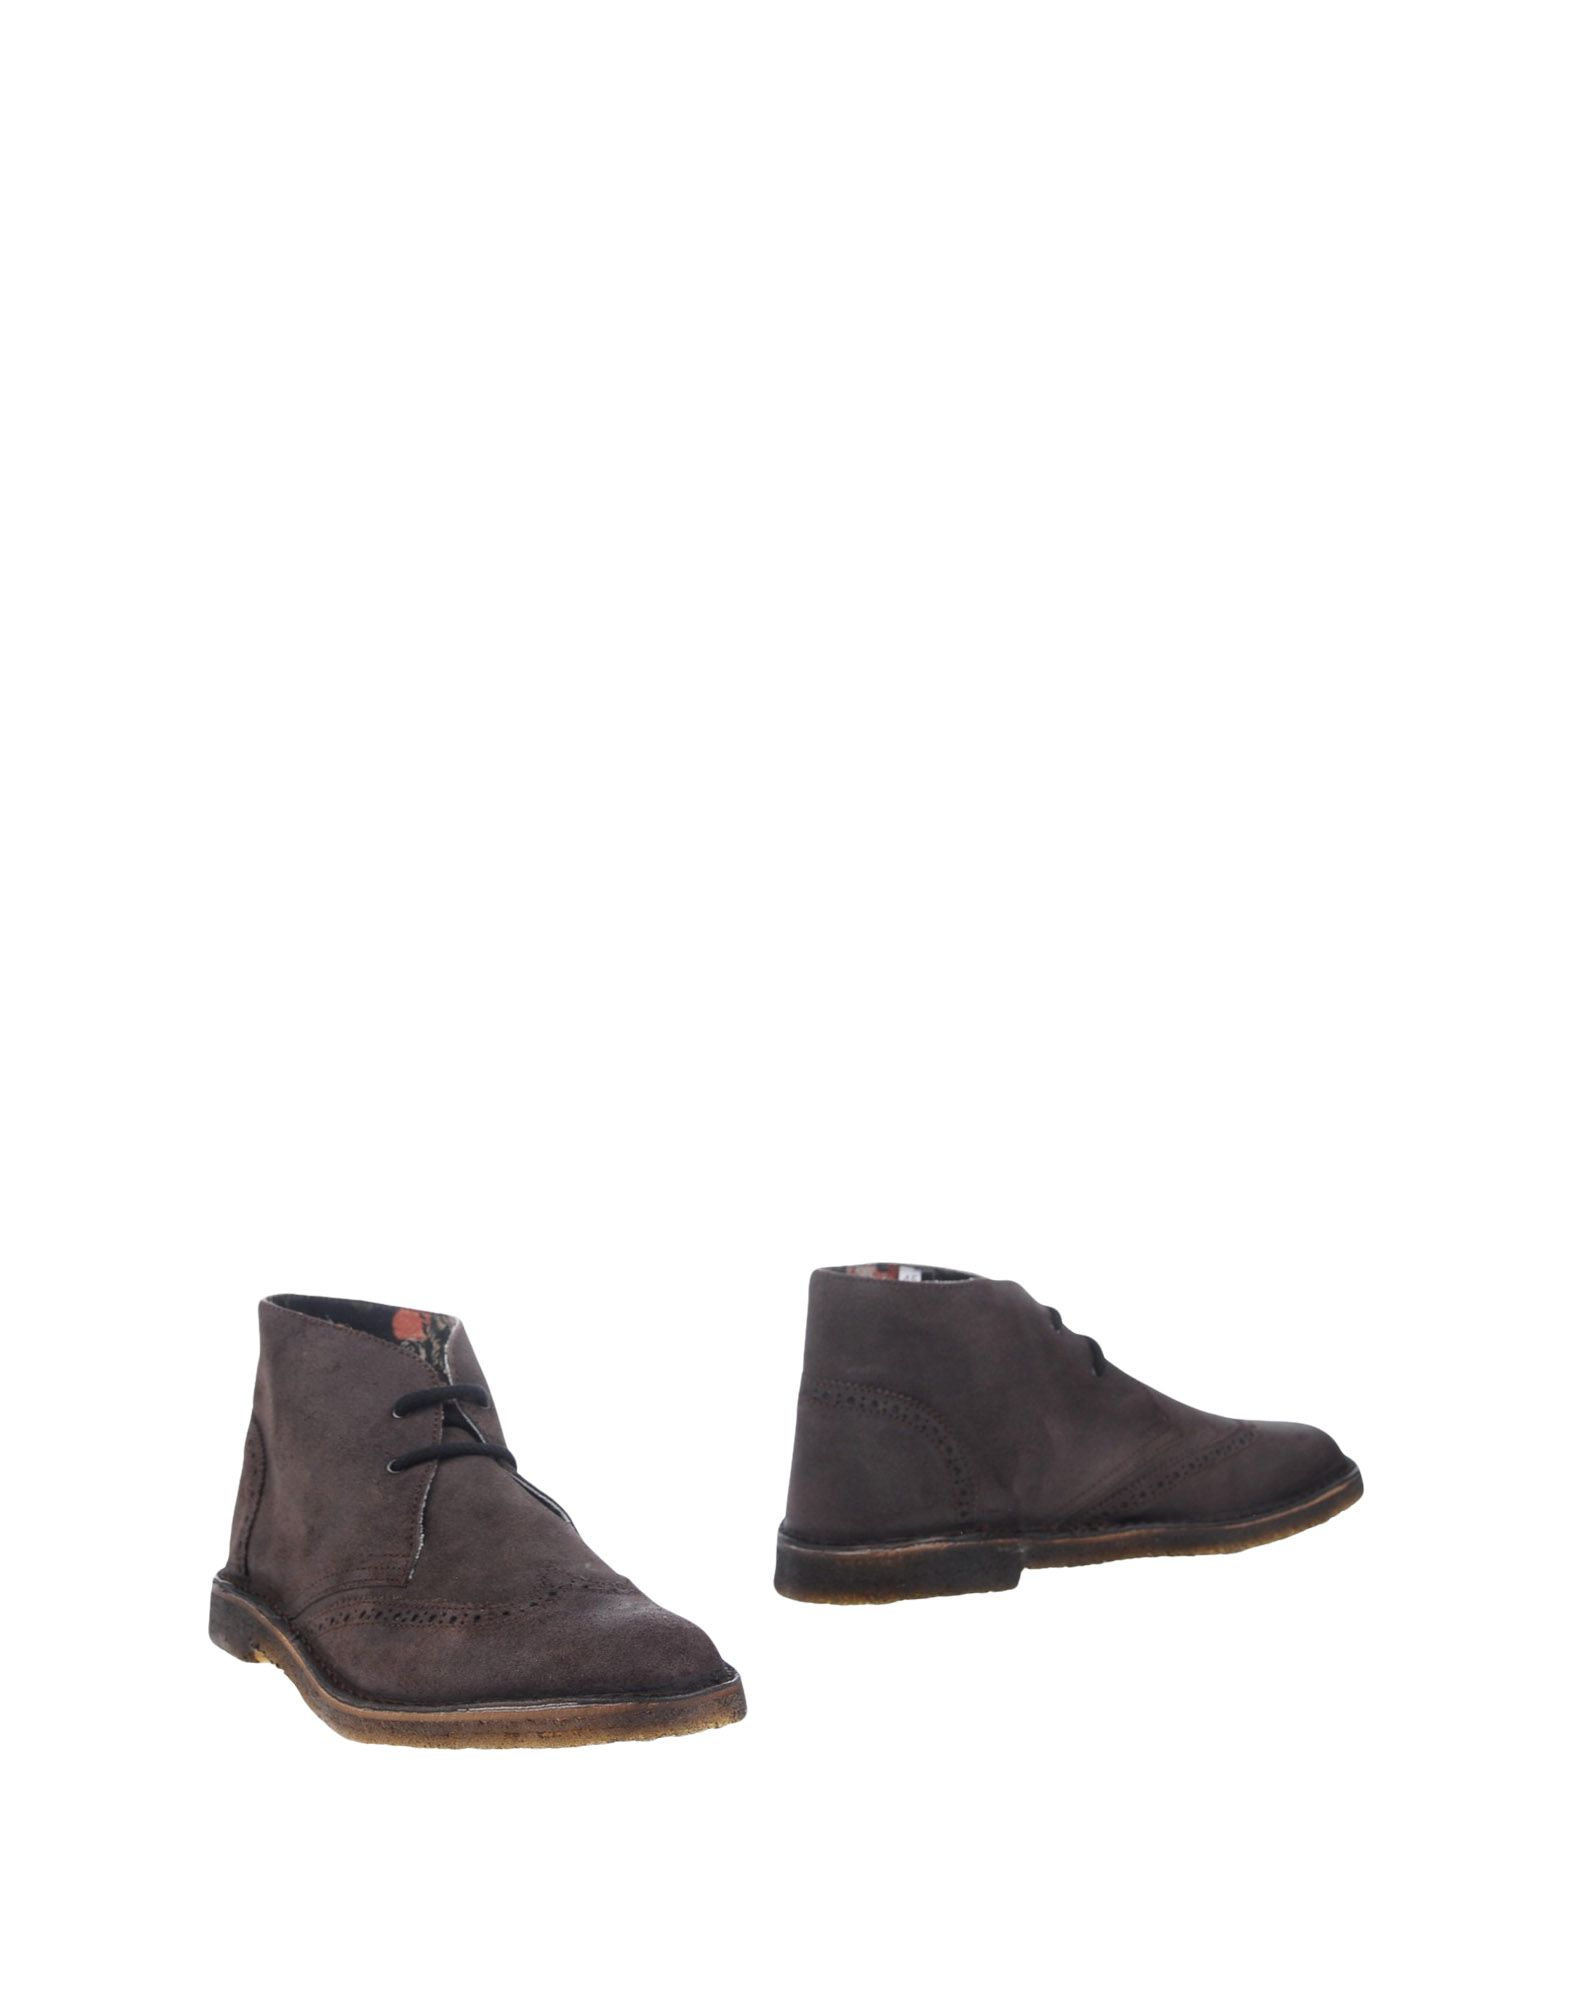 Bottine Weg Homme - Bottines Weg sur